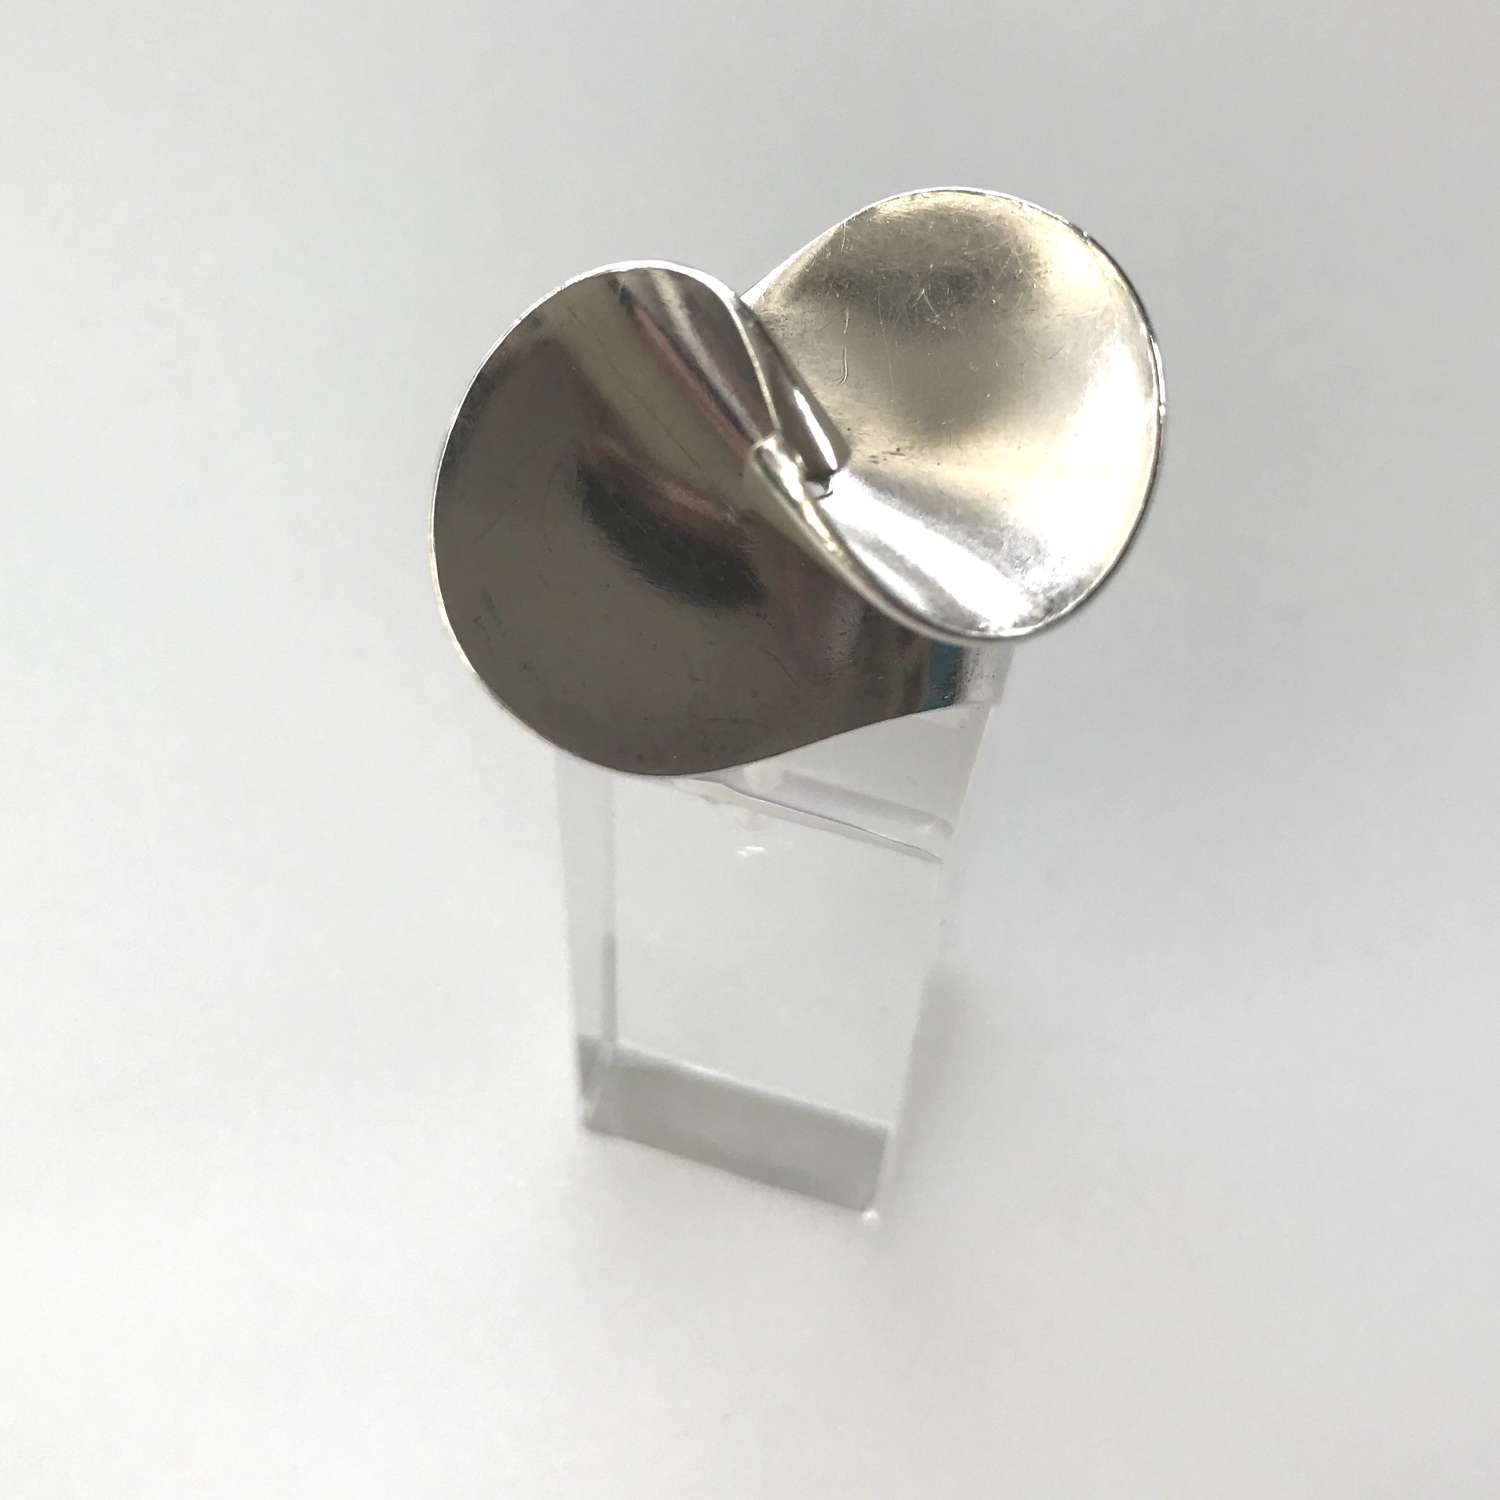 Georg Jensen silver ring by Ibe Dahlquist, Denmark 1960s